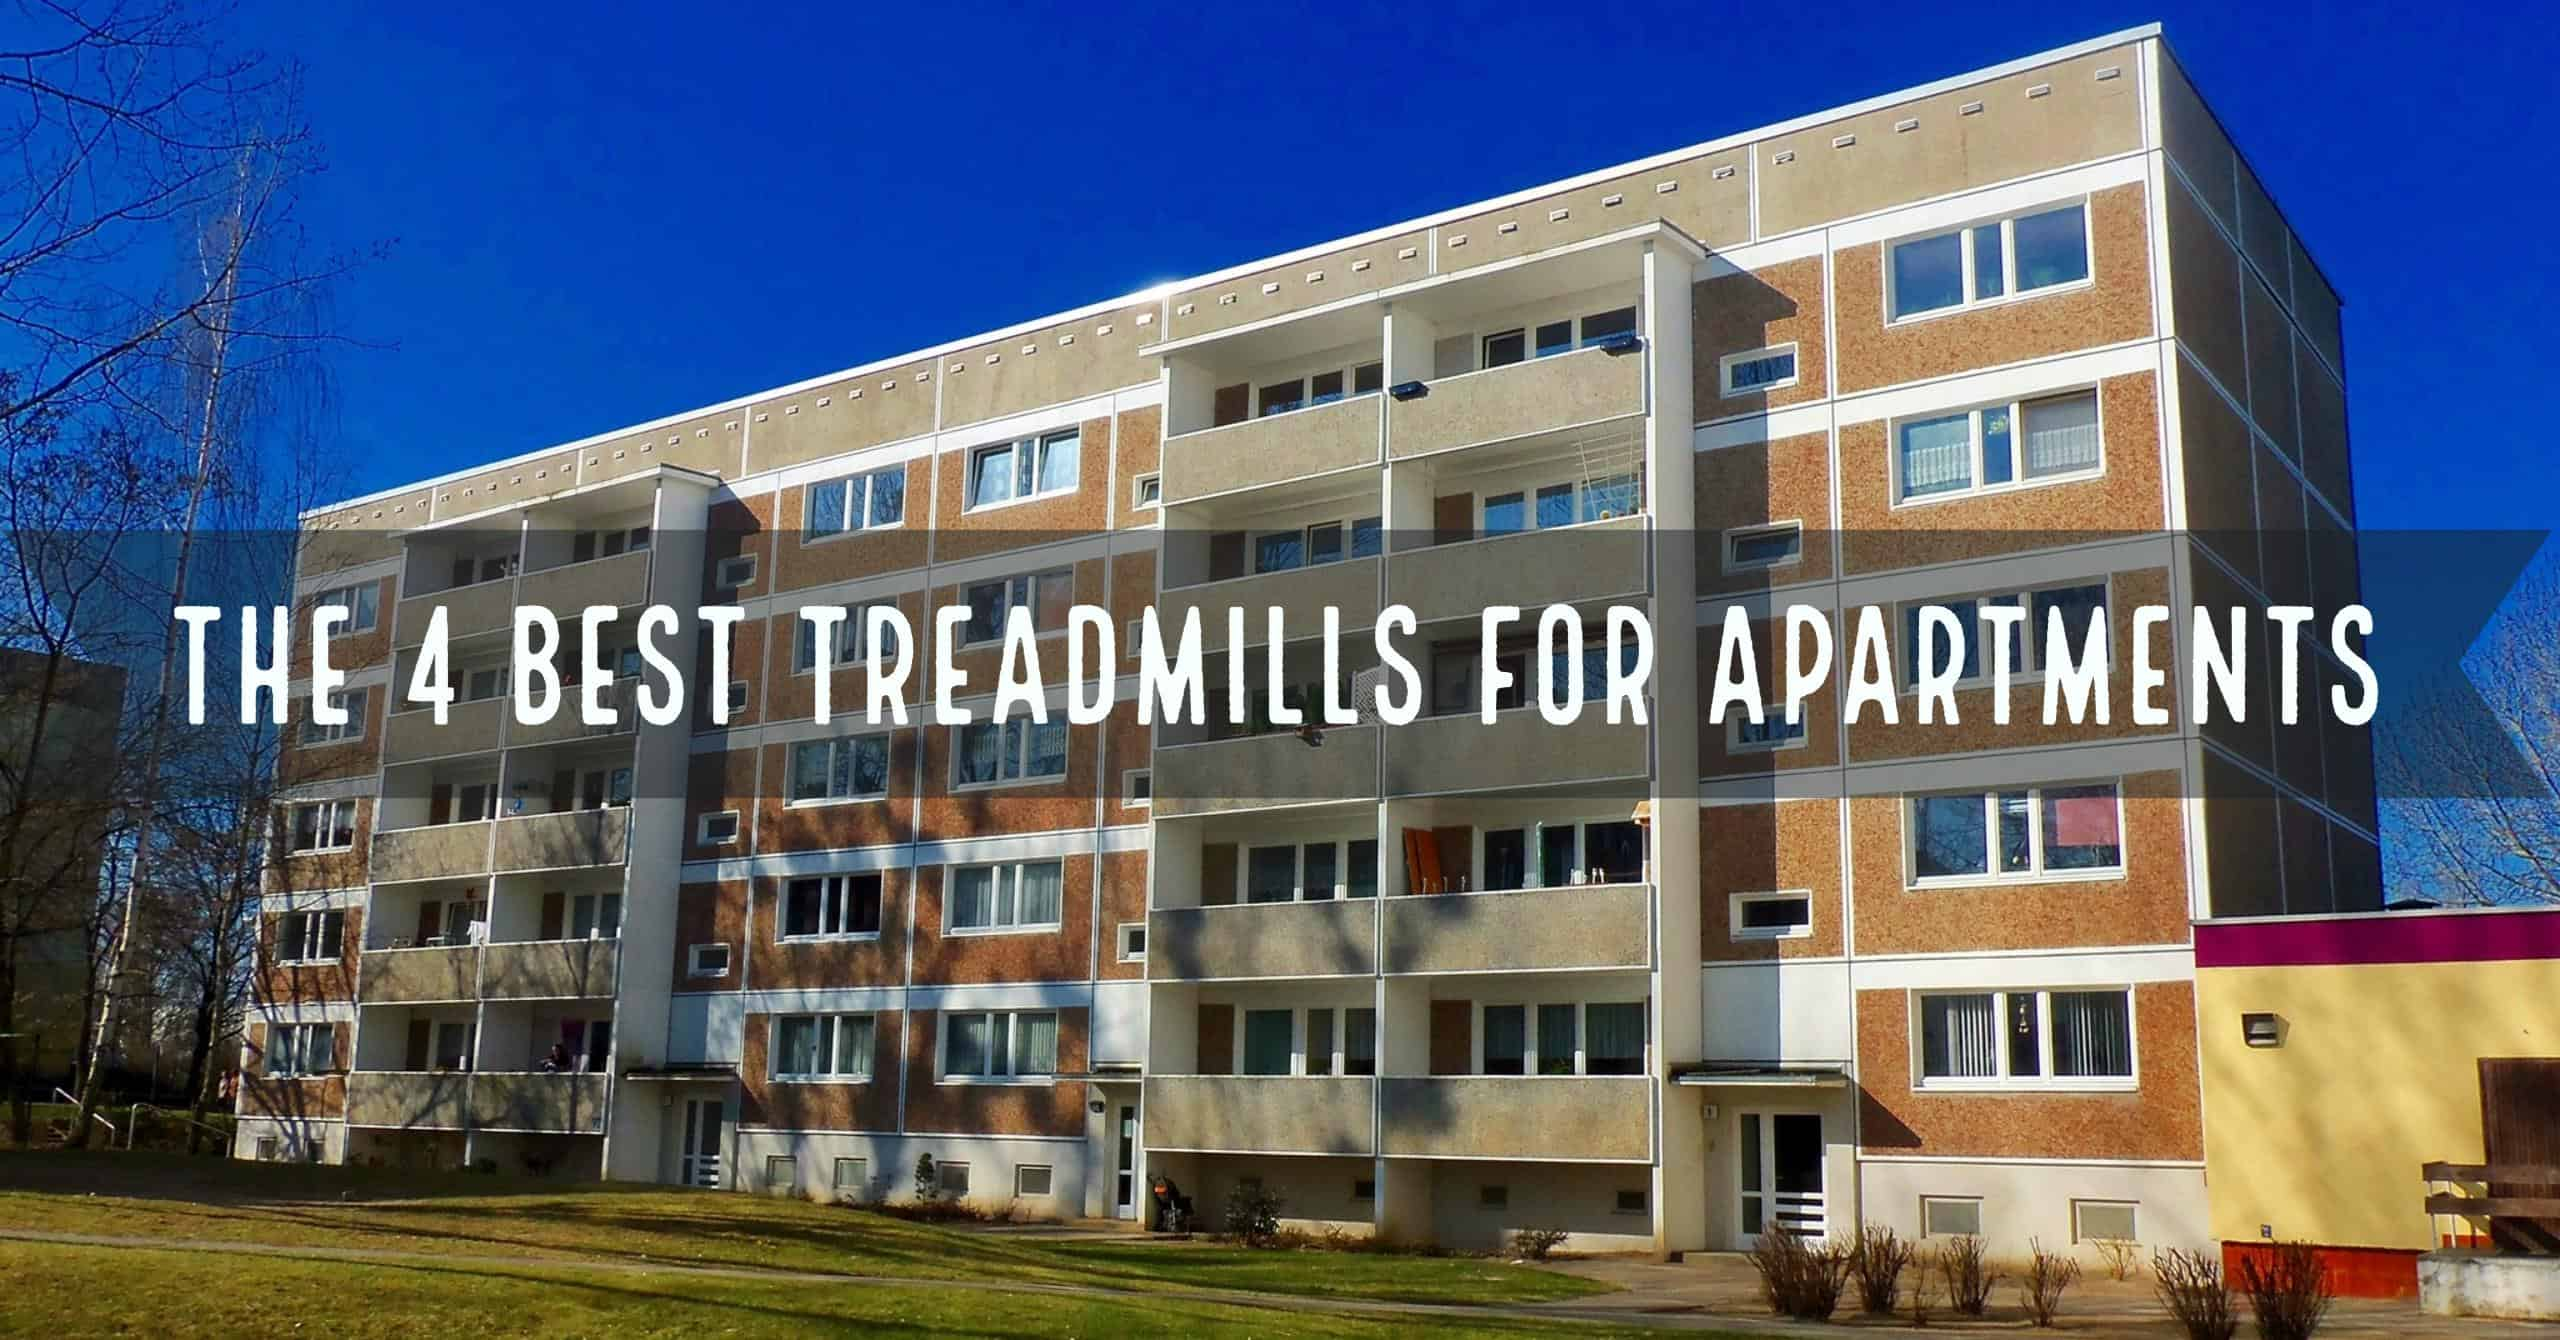 Compact, yet capable treadmills are a perfect fit for apartments that have a premium on extra space. These small treadmills sit quietly in the corner until you're ready to use it in the morning or after an exhausting day at work. Here are the 4 best treadmills for apartments that are actually worth it.